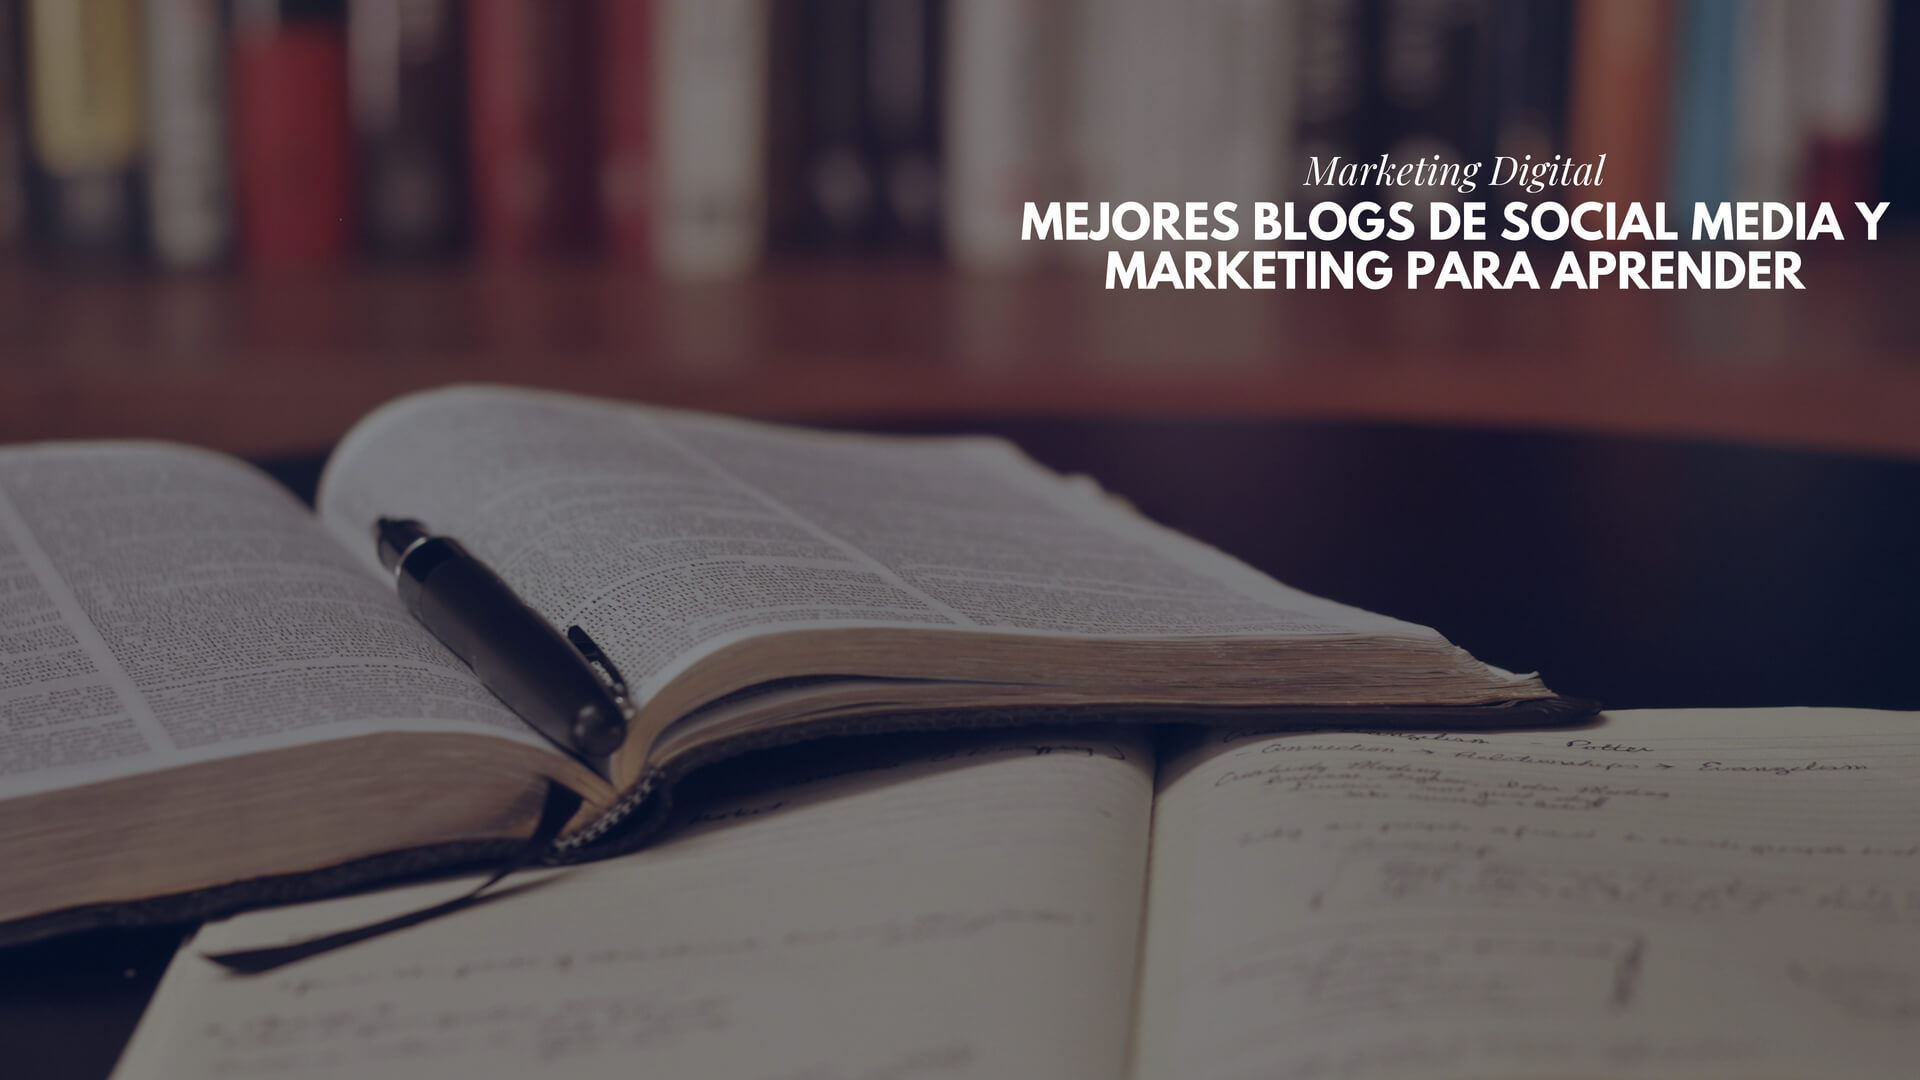 Los mejores Blogs de Social Media y Marketing para aprender